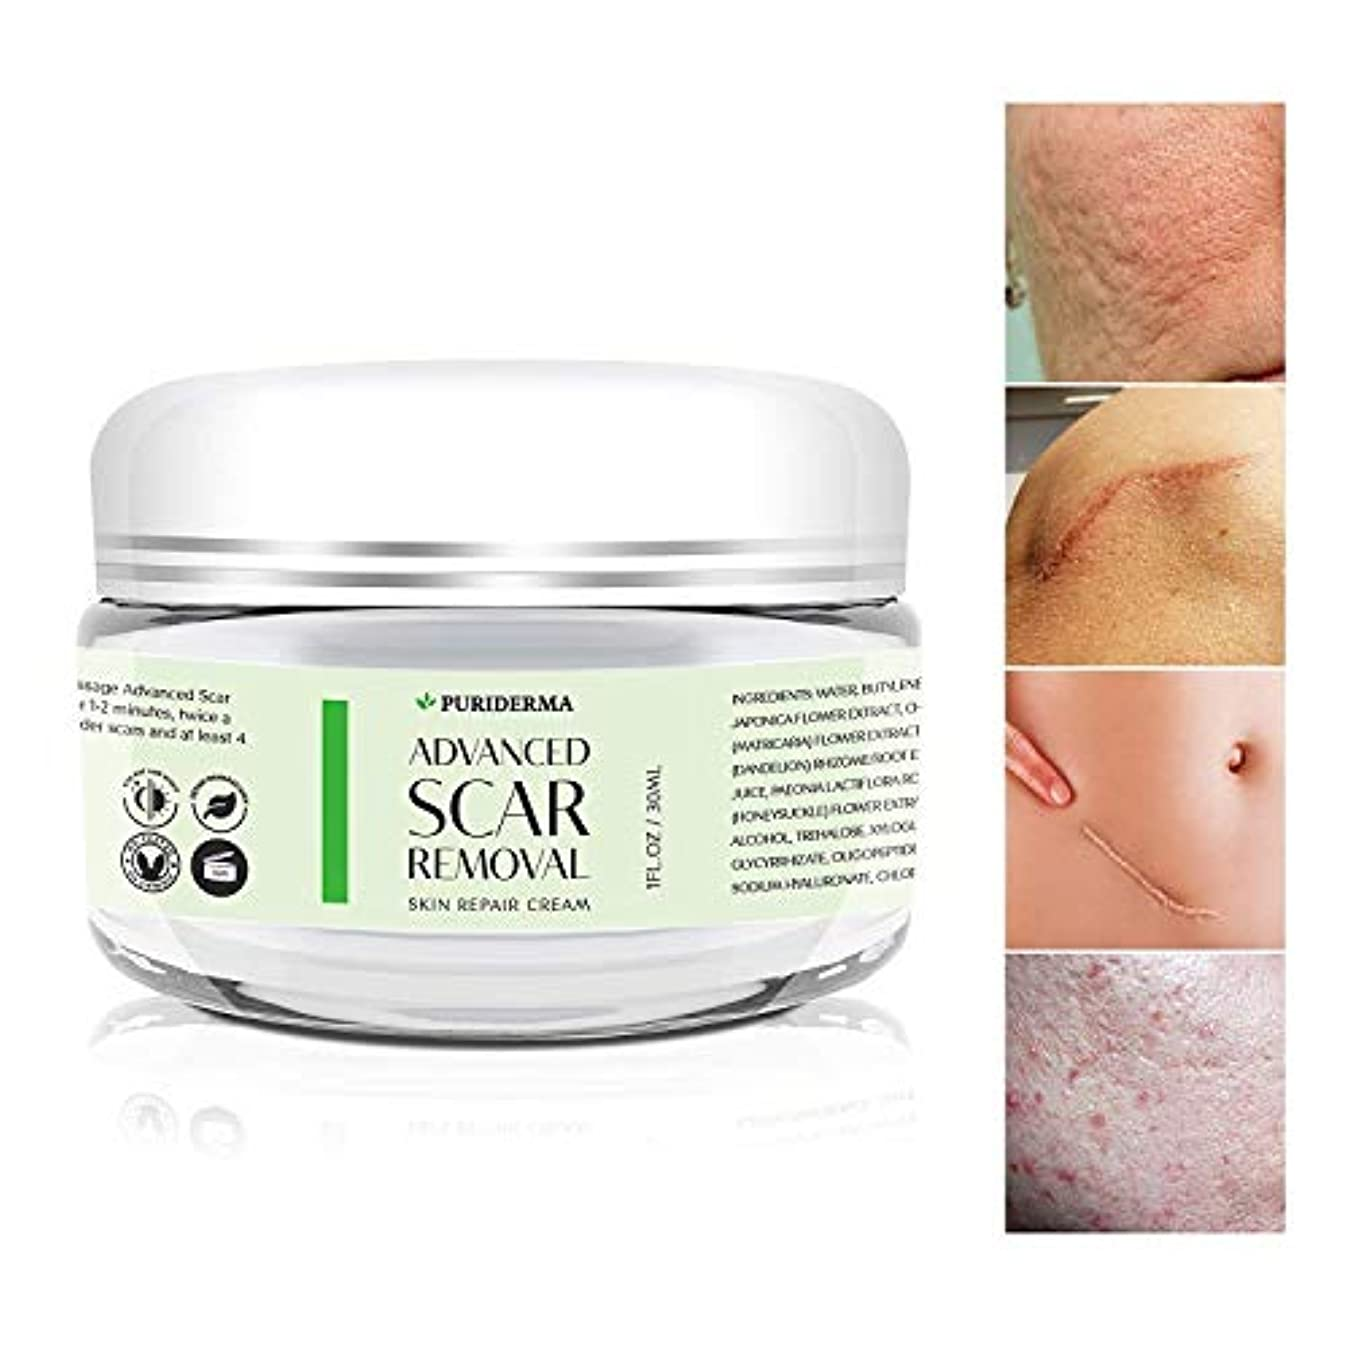 ボタン人道的知恵Puriderma 社 の Advanced Scar Removal Cream (30 ml) 妊娠線 や 傷跡 修復に Advanced Treatment for Face & Body, Old & New Scars...